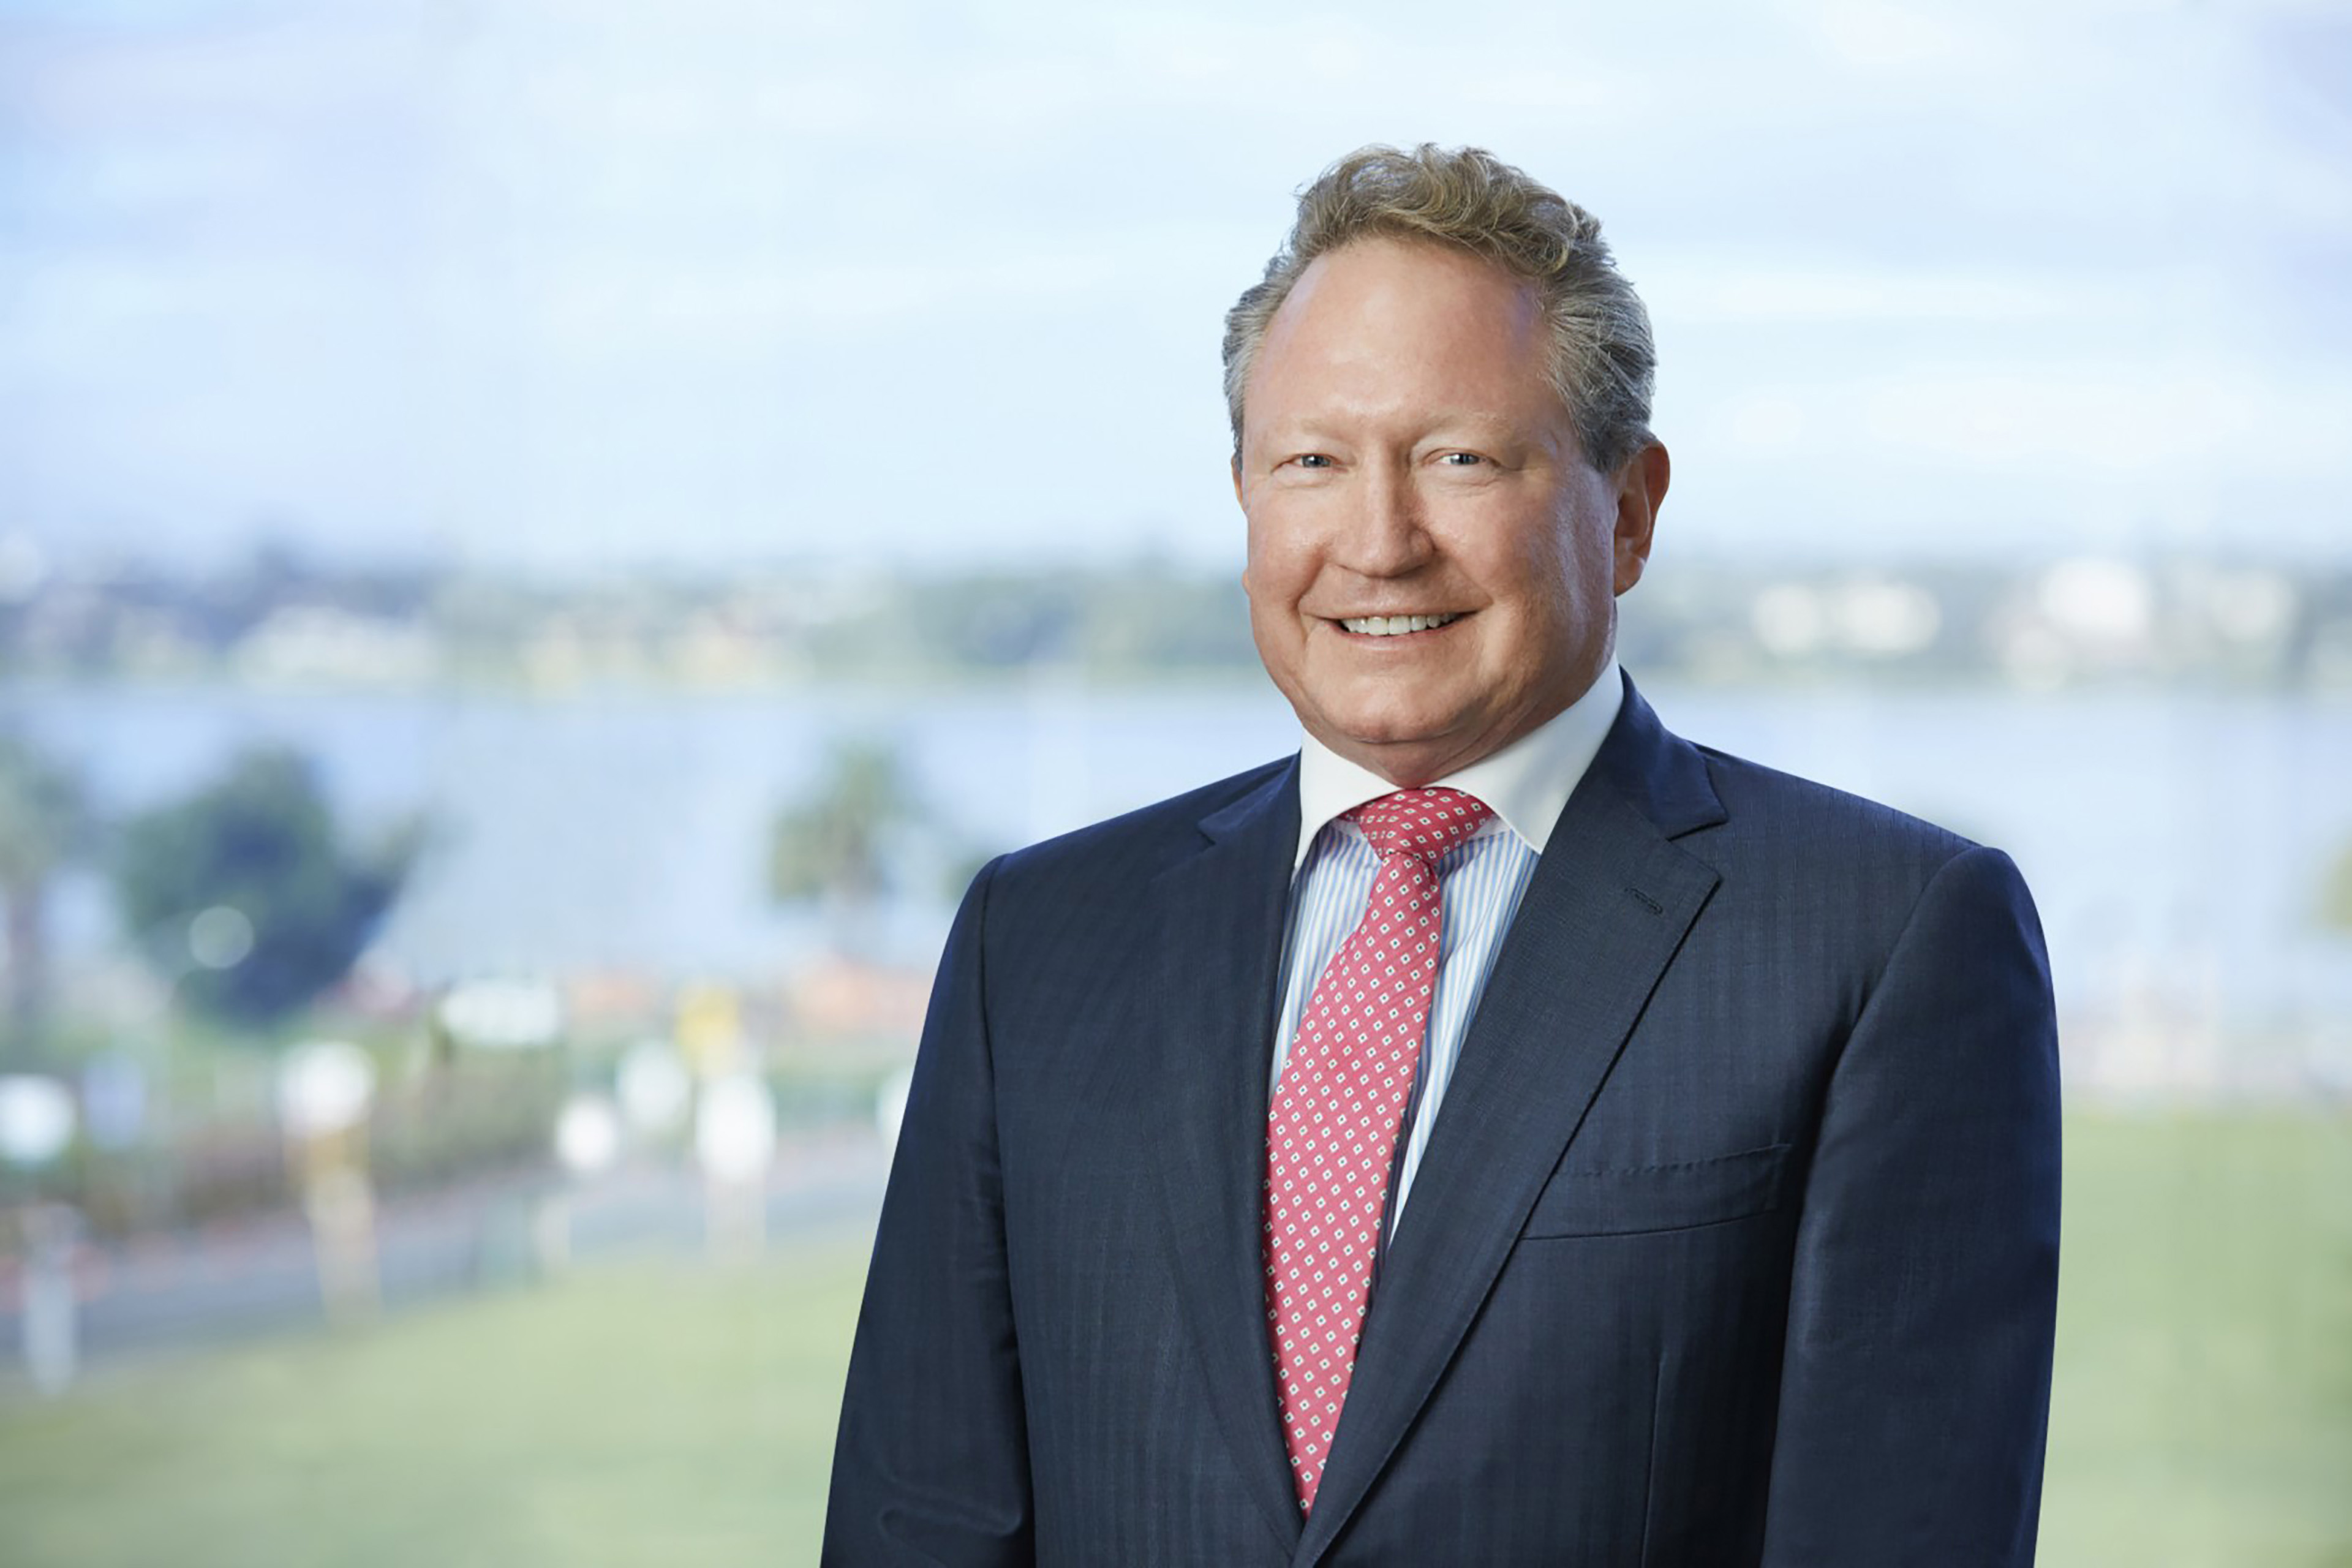 A photographic portrait of Andrew Forrest